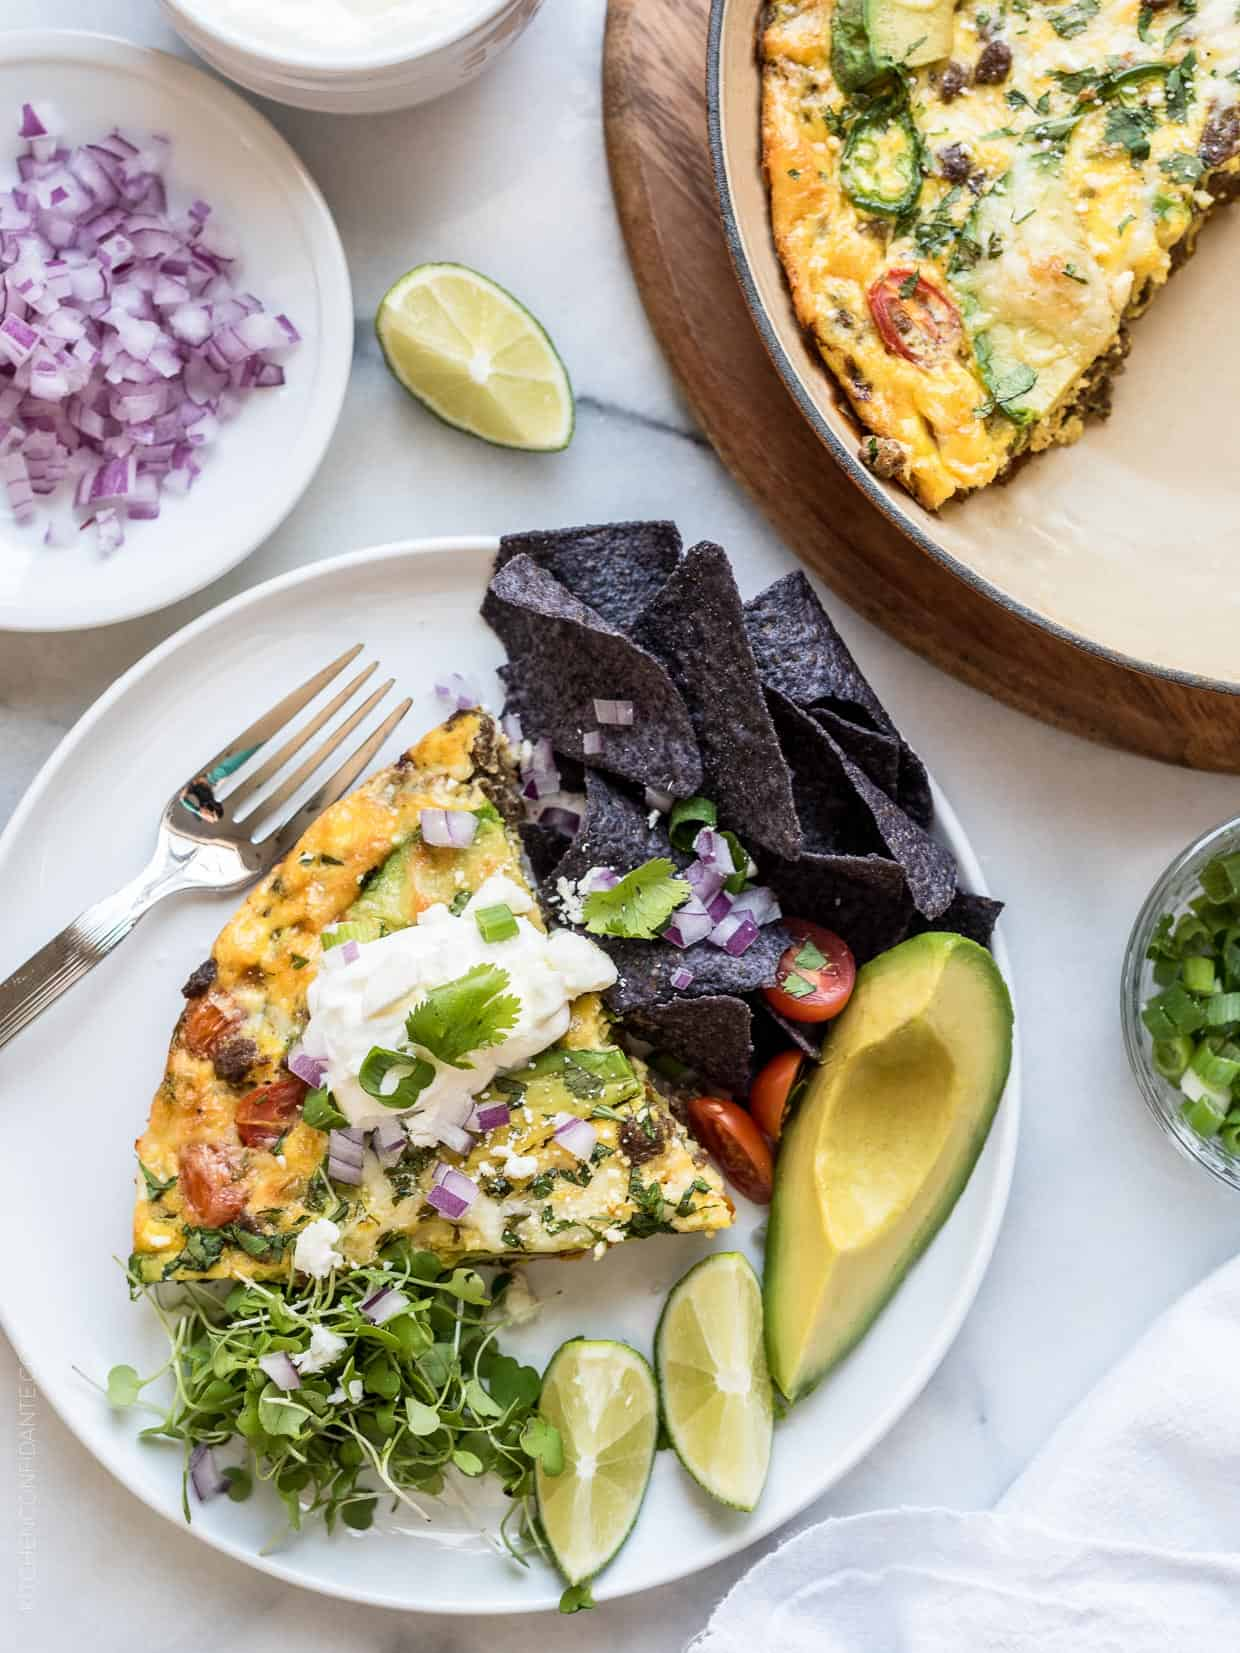 Taco night is always a hit but now you can have tacos for breakfast, lunch AND dinner with this amazing Taco Frittata!